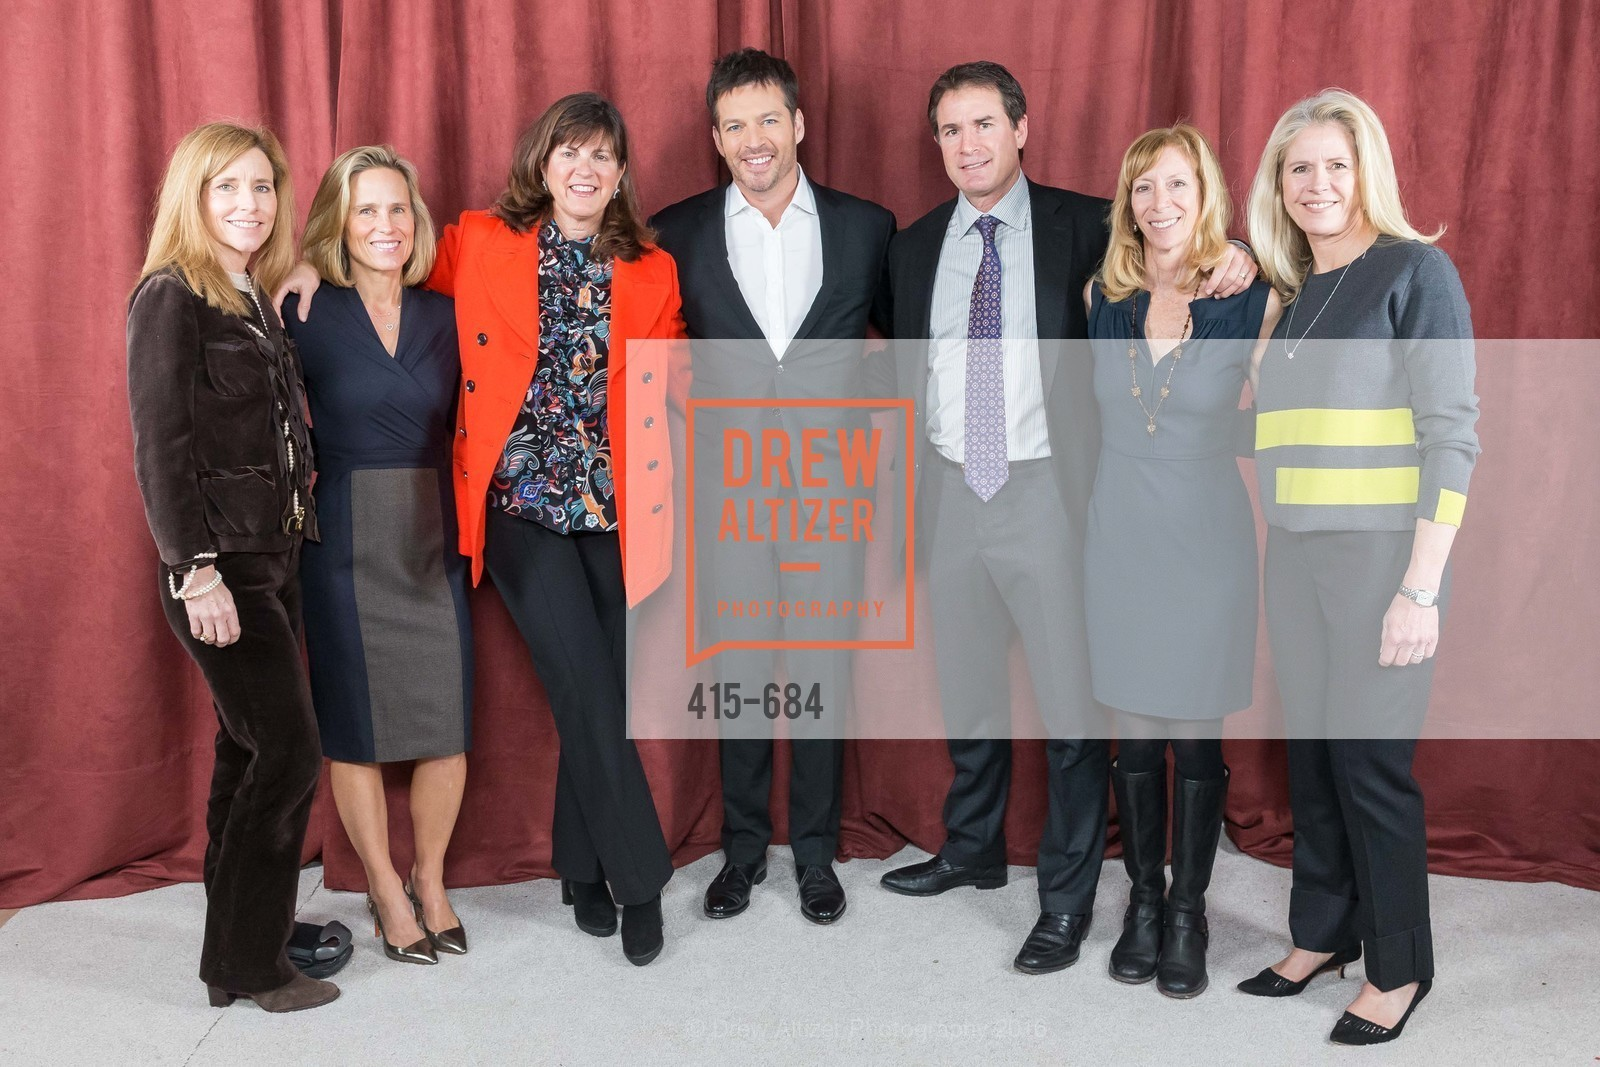 Jane Solomon, Harry Connick Jr., Rhonda Gessow, Under One Umbrella, Sharon Heights Golf and Country Club, January 13th, 2016,Drew Altizer, Drew Altizer Photography, full-service event agency, private events, San Francisco photographer, photographer California